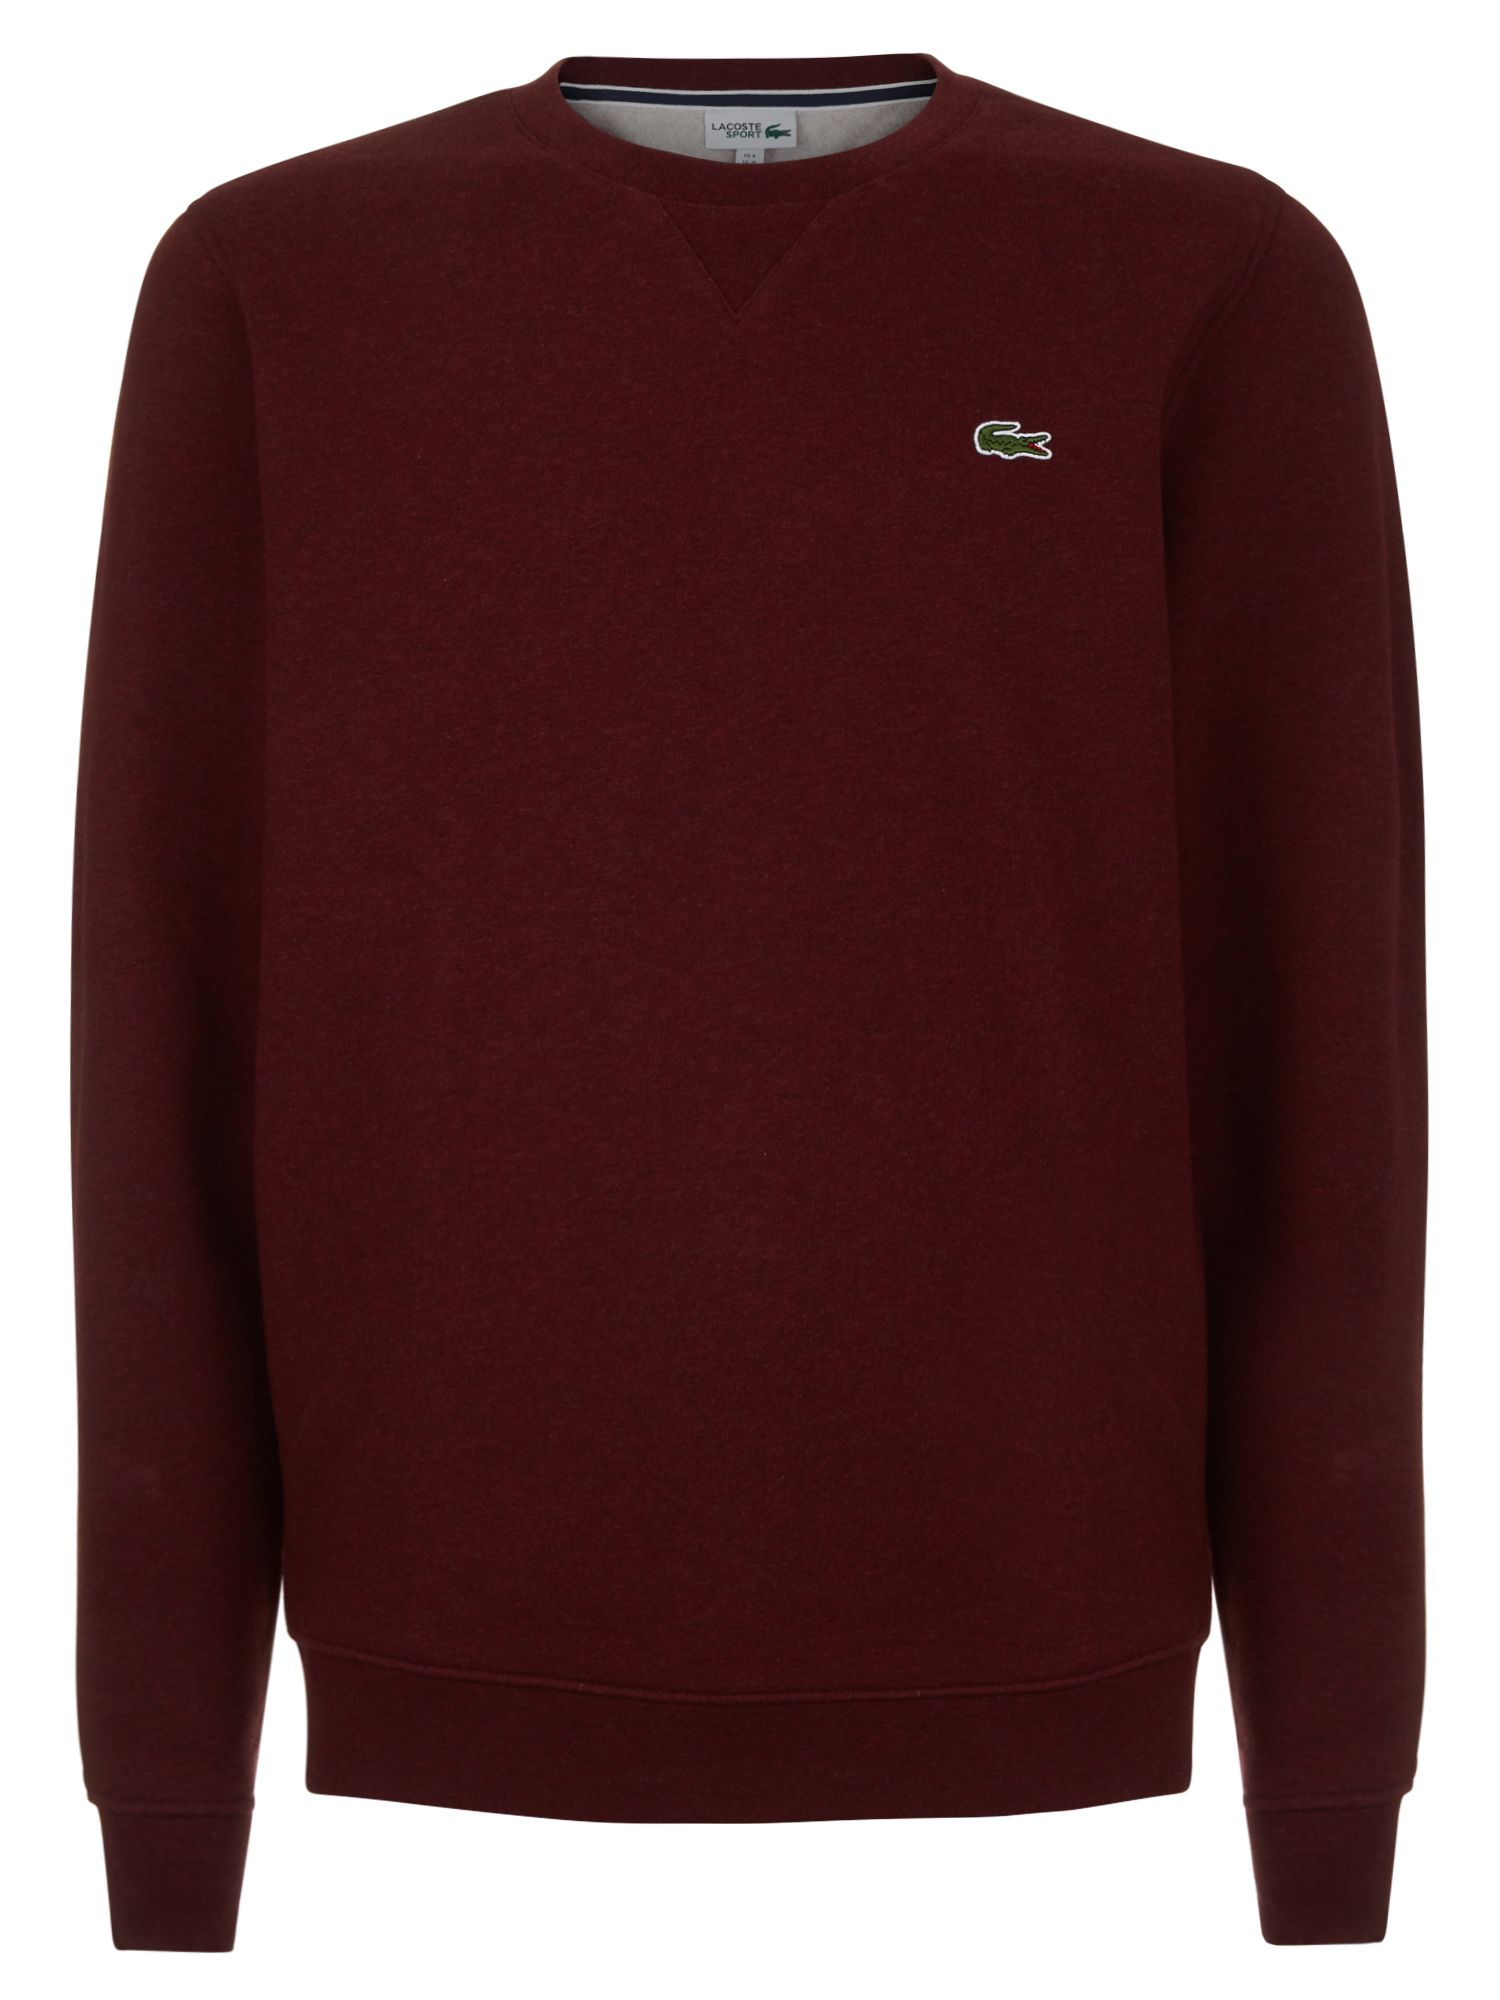 Men's Lacoste Lacoste Crew Neck Fleece Sweatshirt, Silver Chine